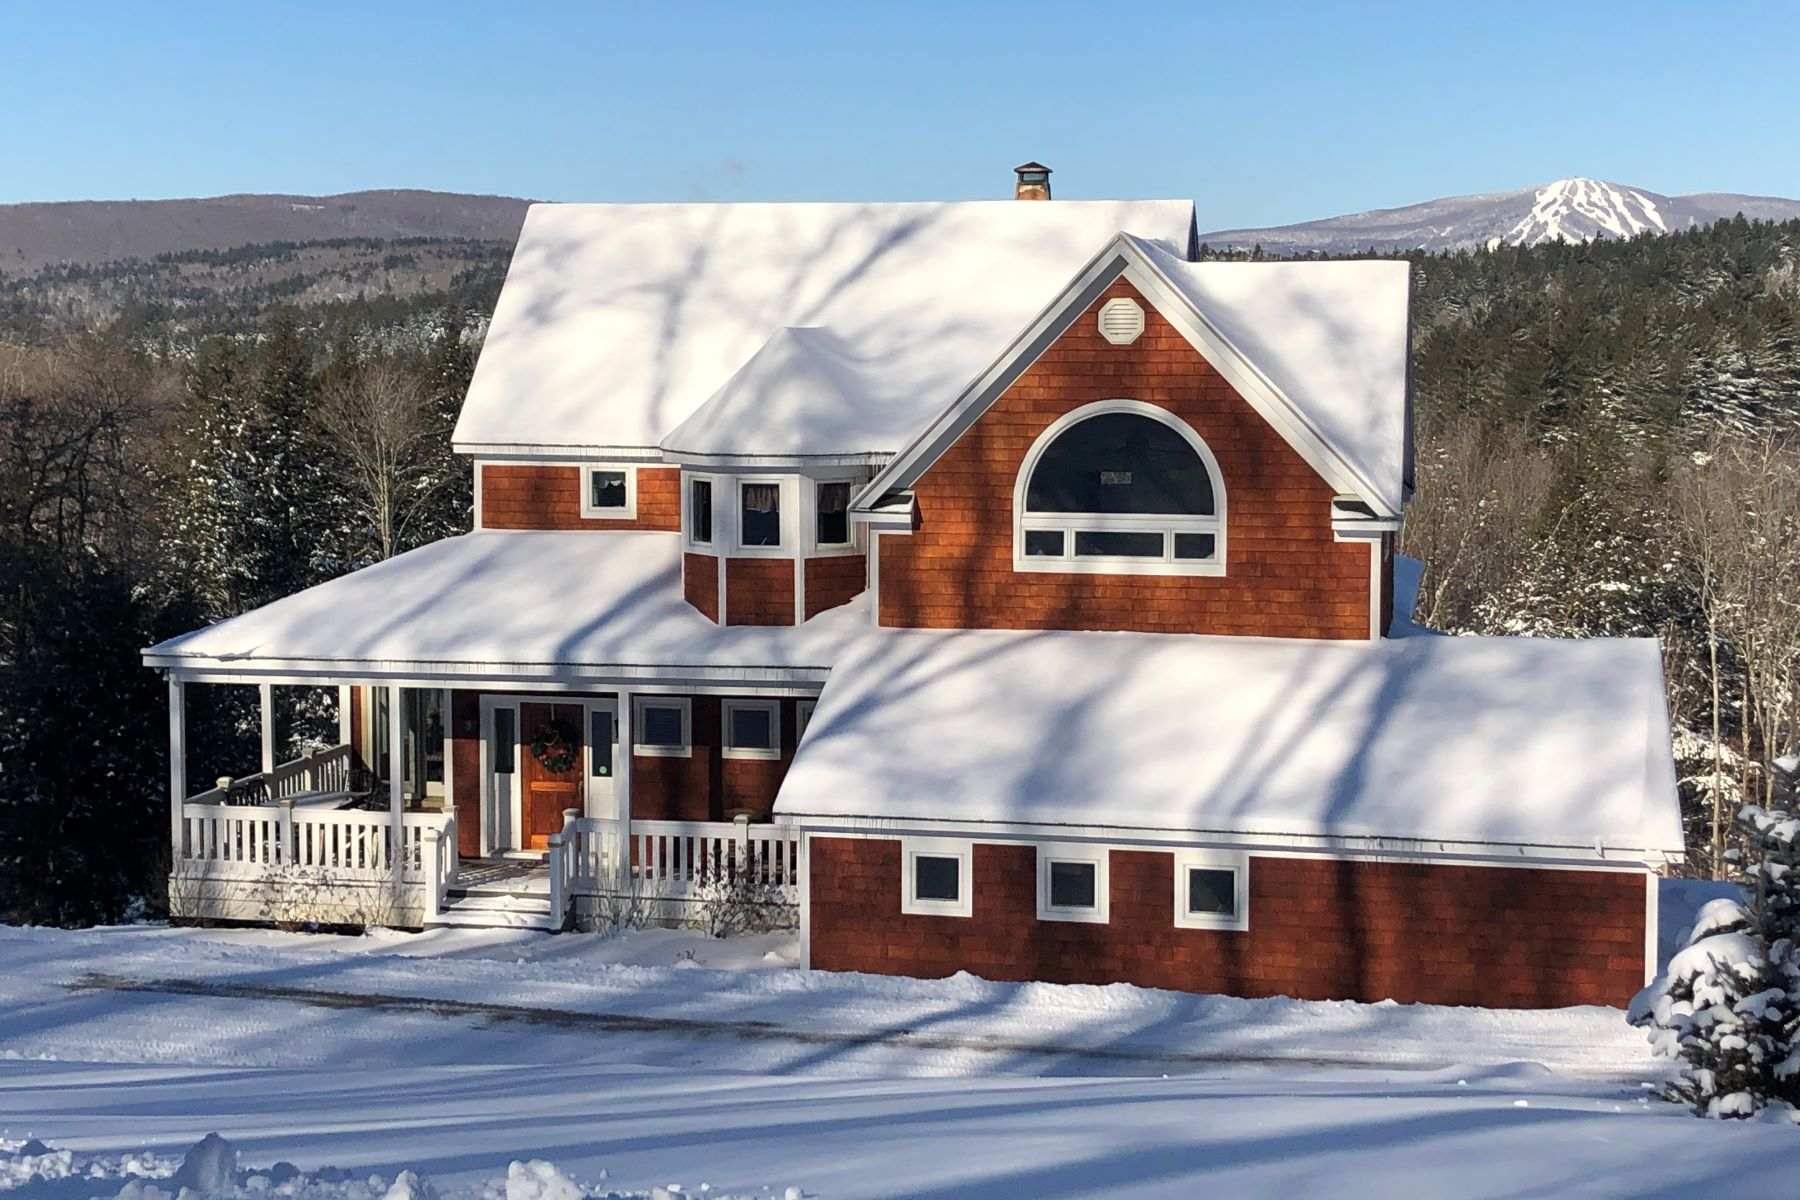 Single Family Homes for Sale at 58 Stratton Mtn Access Road Winhall, Vermont 05340 United States